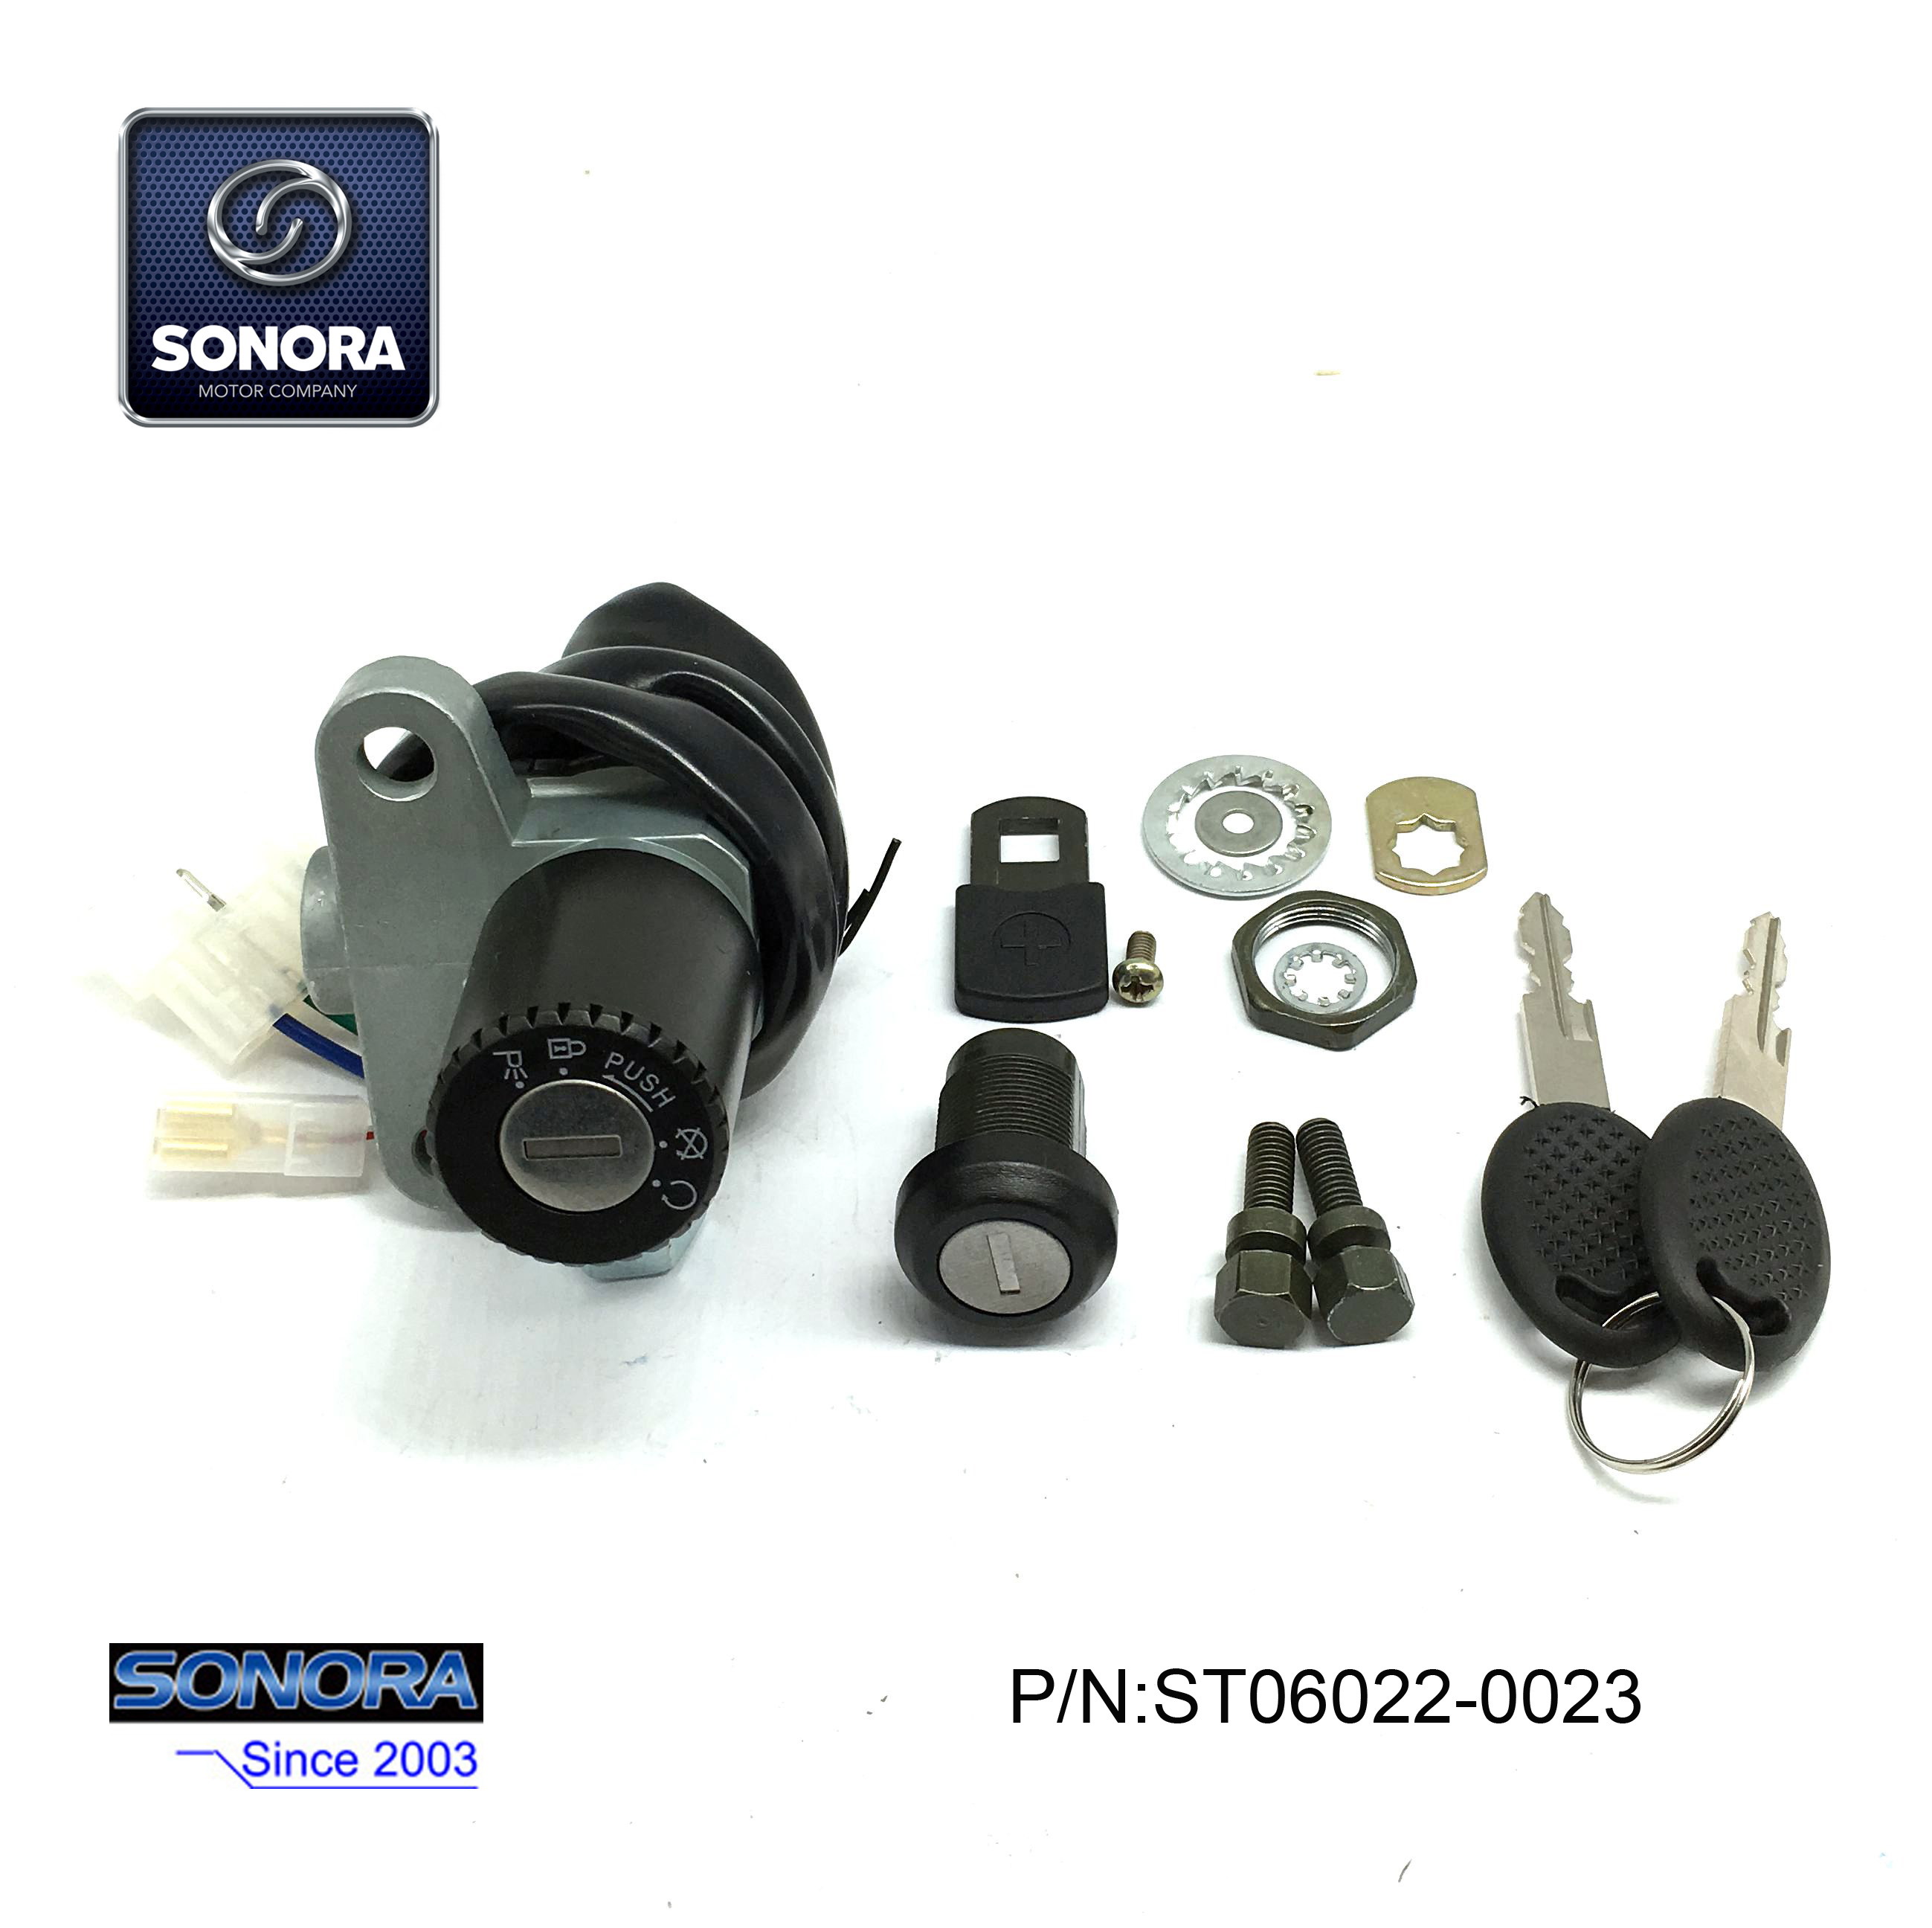 ST06022-0023 DERBI SENDA 3 wires lock set